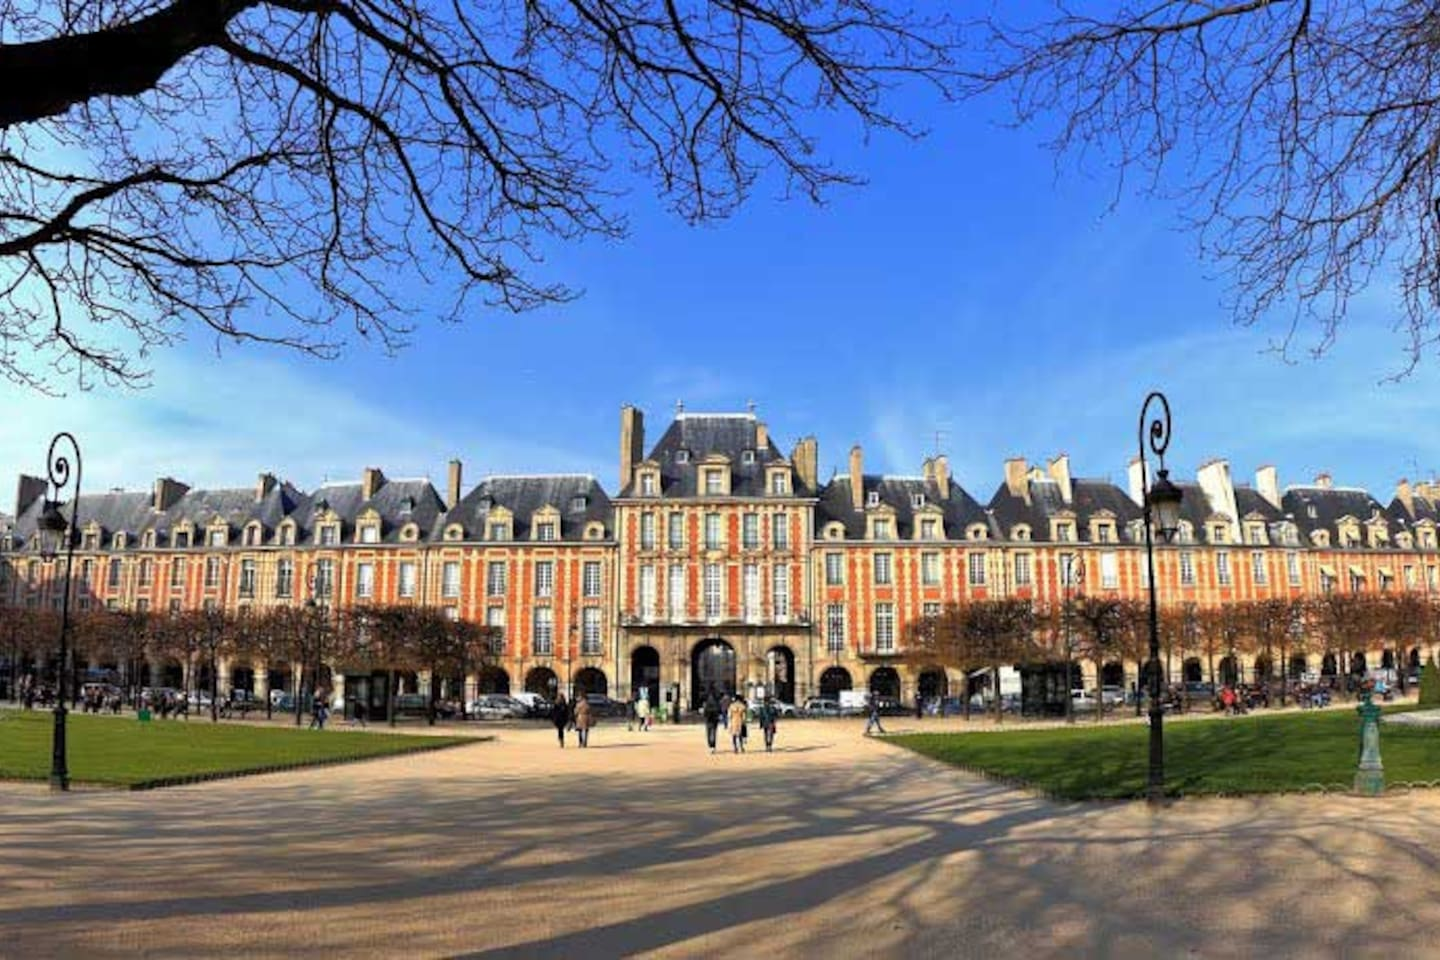 Just steps away from place de vosges